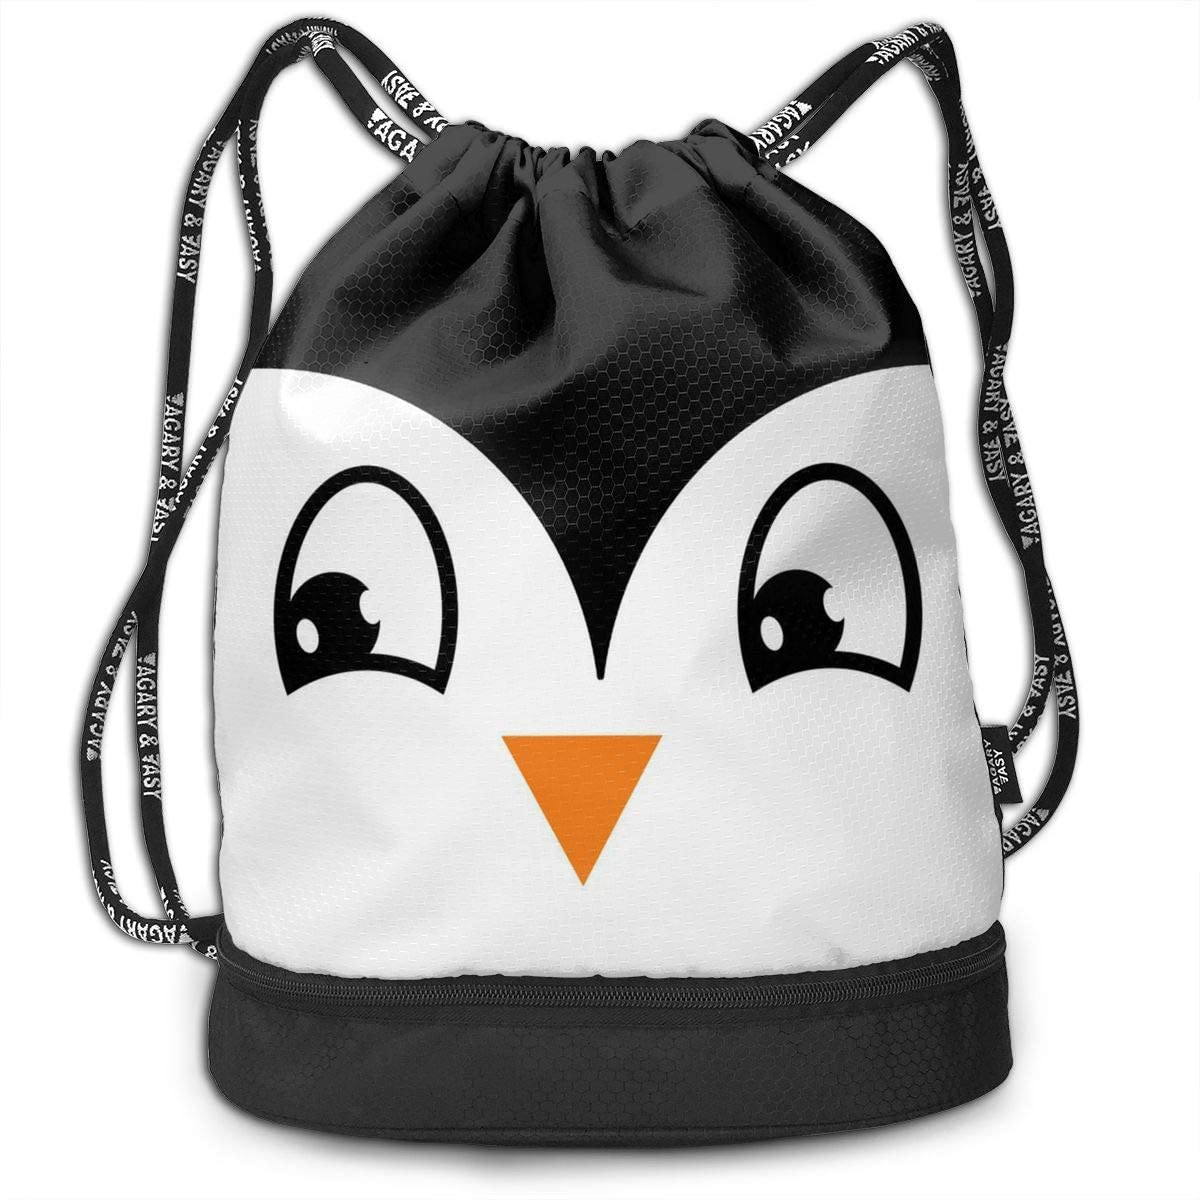 Bundle Backpacks Penguin Face Gym Sack Drawstring Bags Casual Daypack Yoga Bag School Training Pouch